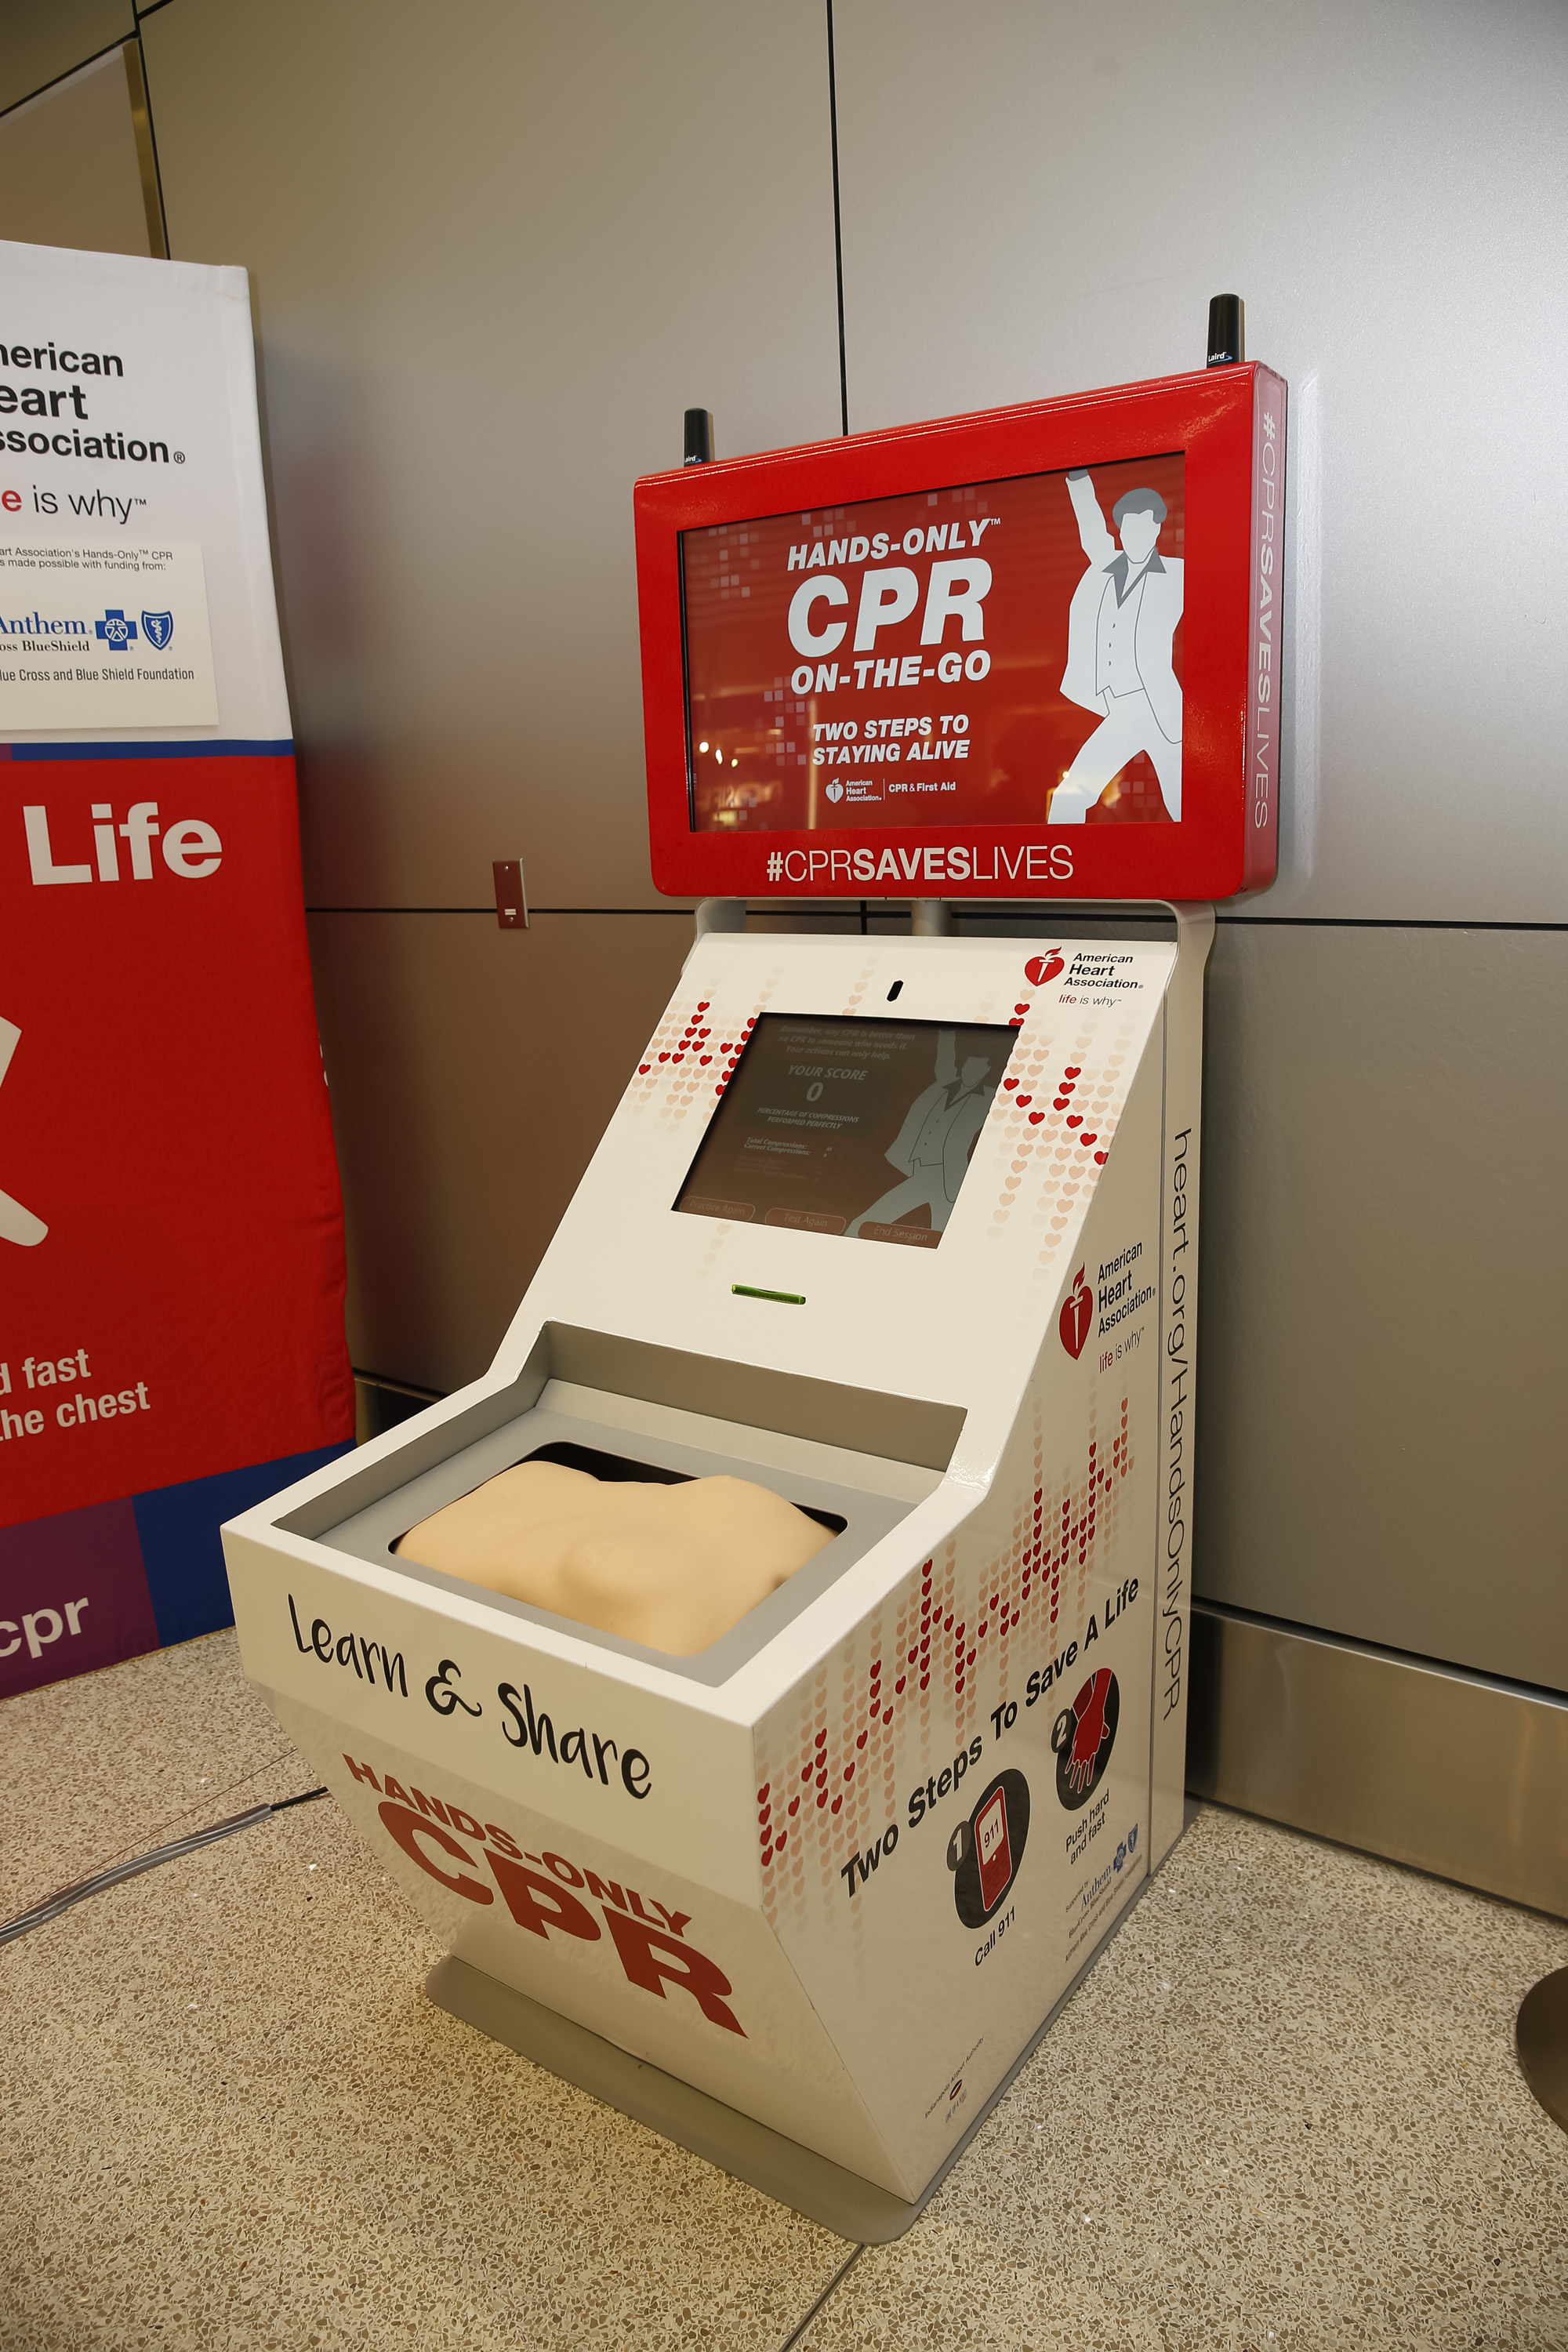 The American Heart Association and Anthem Blue Cross and Blue Shield in Indiana Unveil Hands-Only CPR Training Kiosk at Indianapolis International Airport